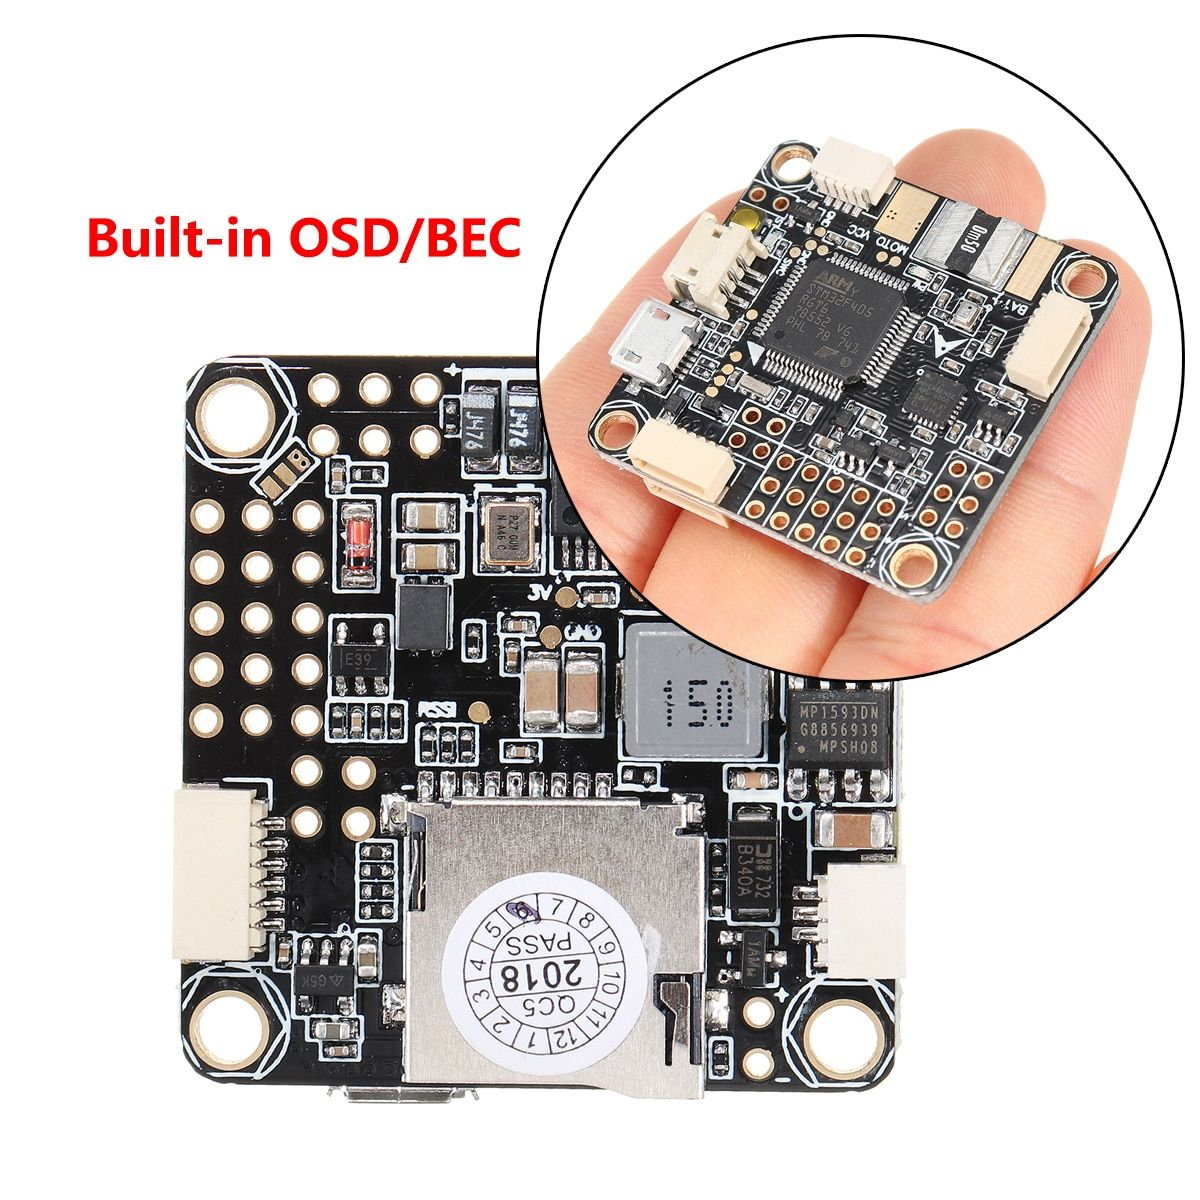 for Betaflight F4 PRO V2 Flight Controller Built-in OSD/BEC Drone Low Noise Stable for FPV Racing Upgraded Latest